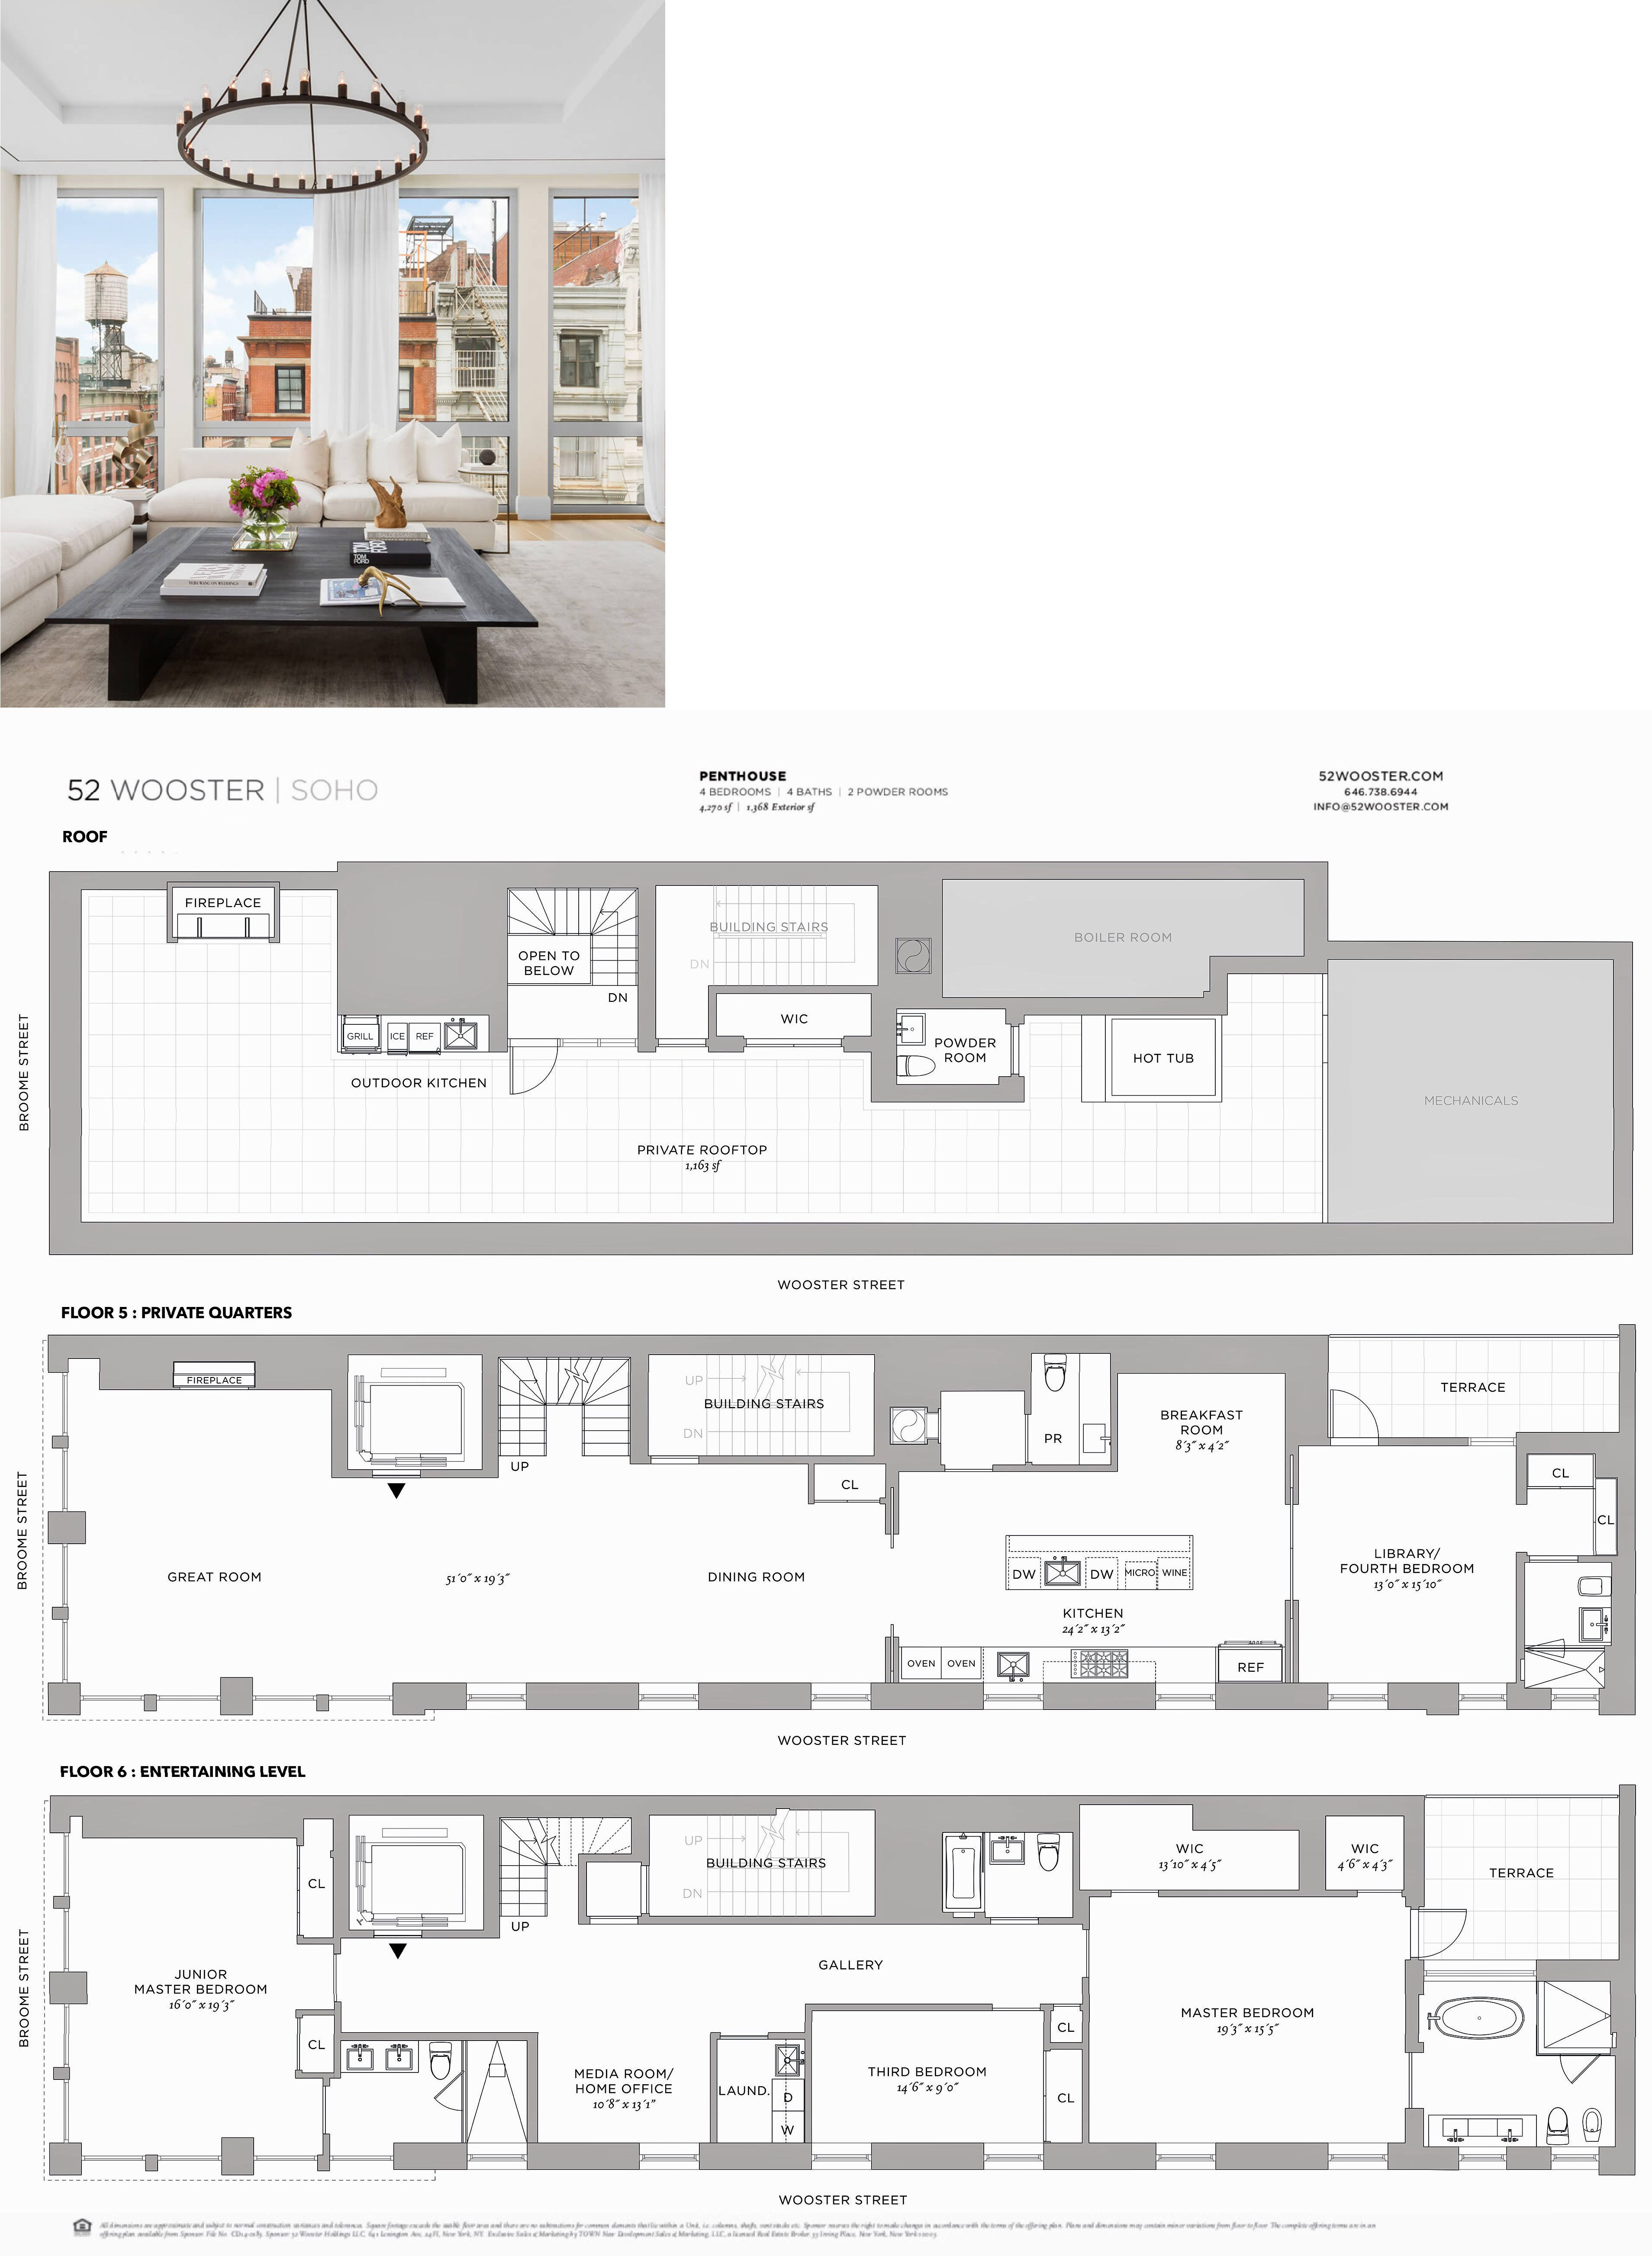 52 Wooster Soho Penthouse Sims House Plans Townhouse Designs House Plans